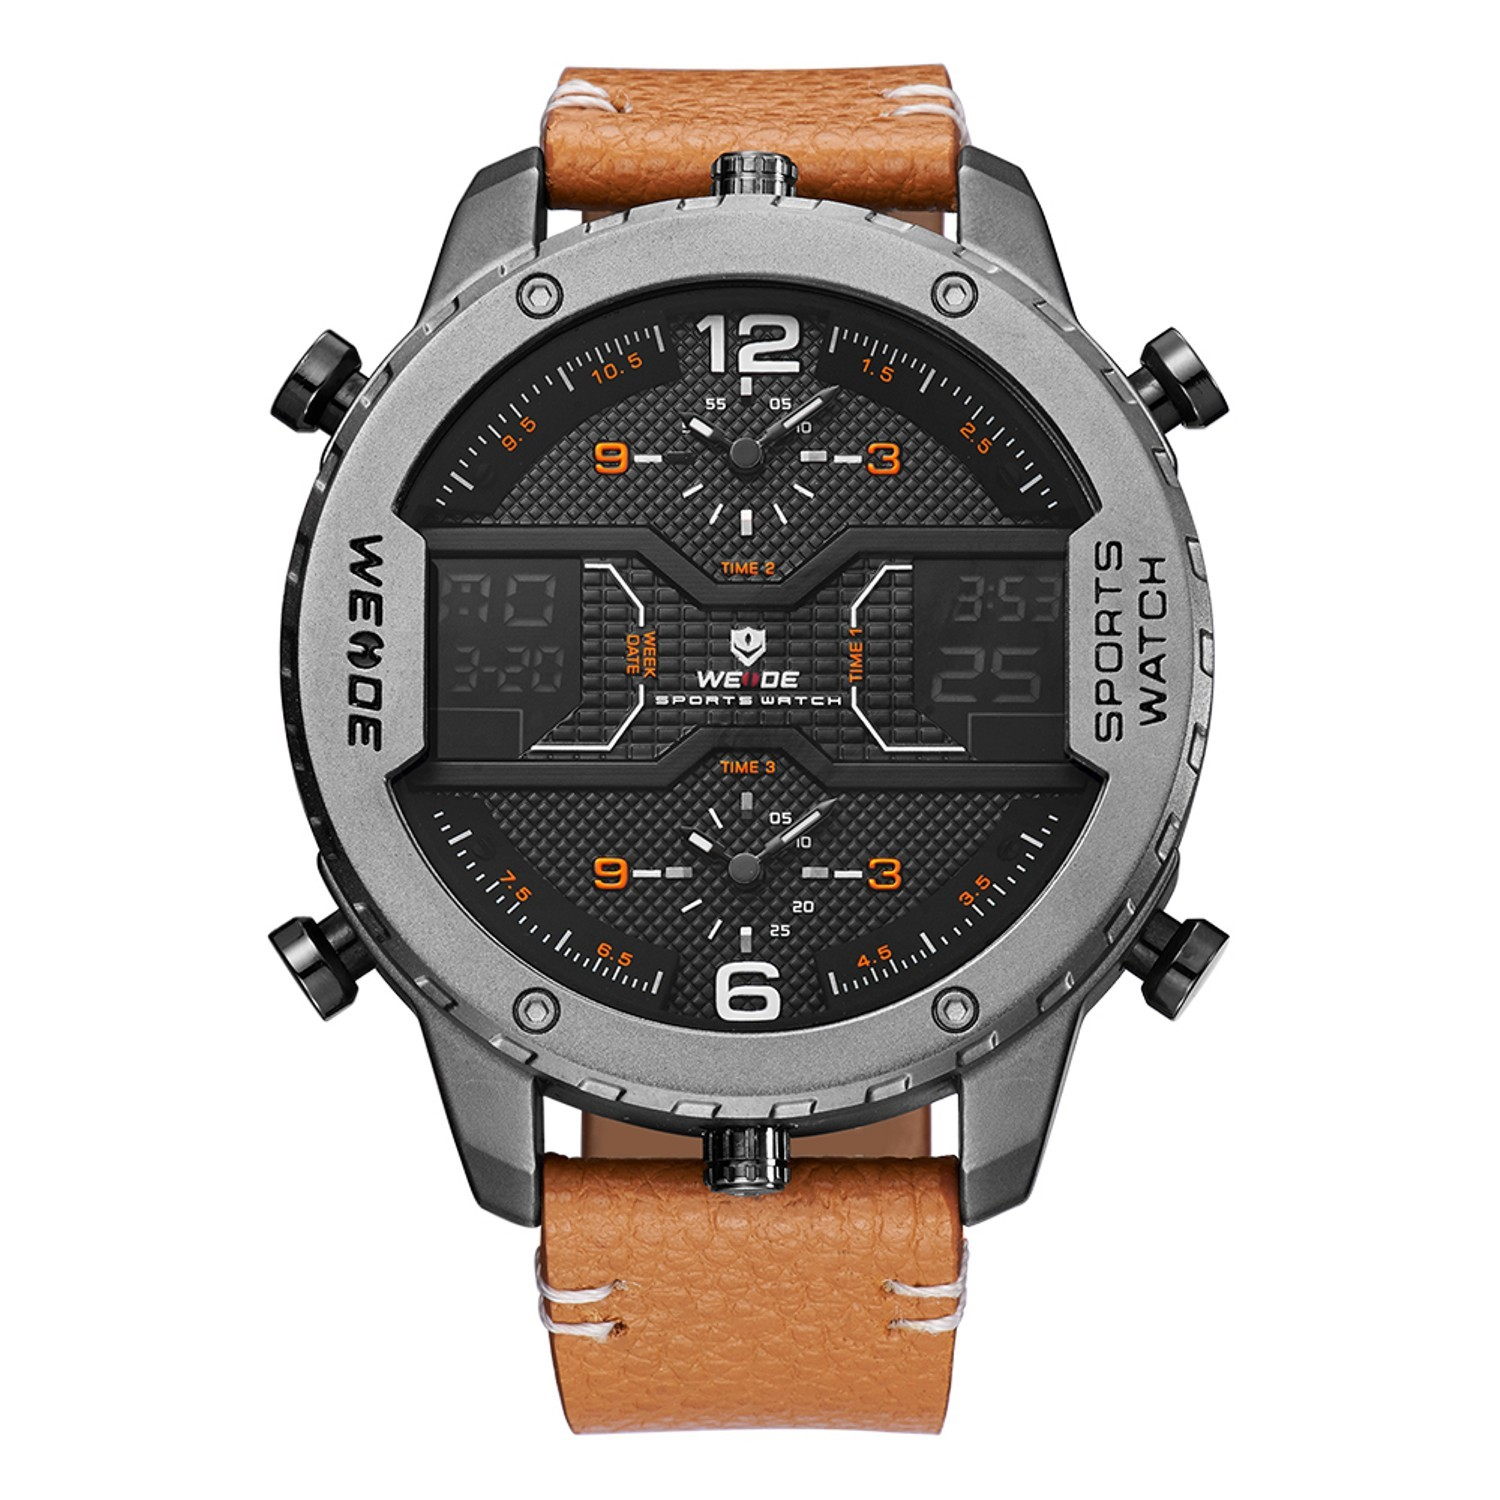 WEIDE-Fashion-Mens-Analog-Watch-Three-Time-Zone-Digital-Calendar-Sport-Date-Quartz-Brown-Leather-Strap_1500x1500_STRETCH_419.jpg